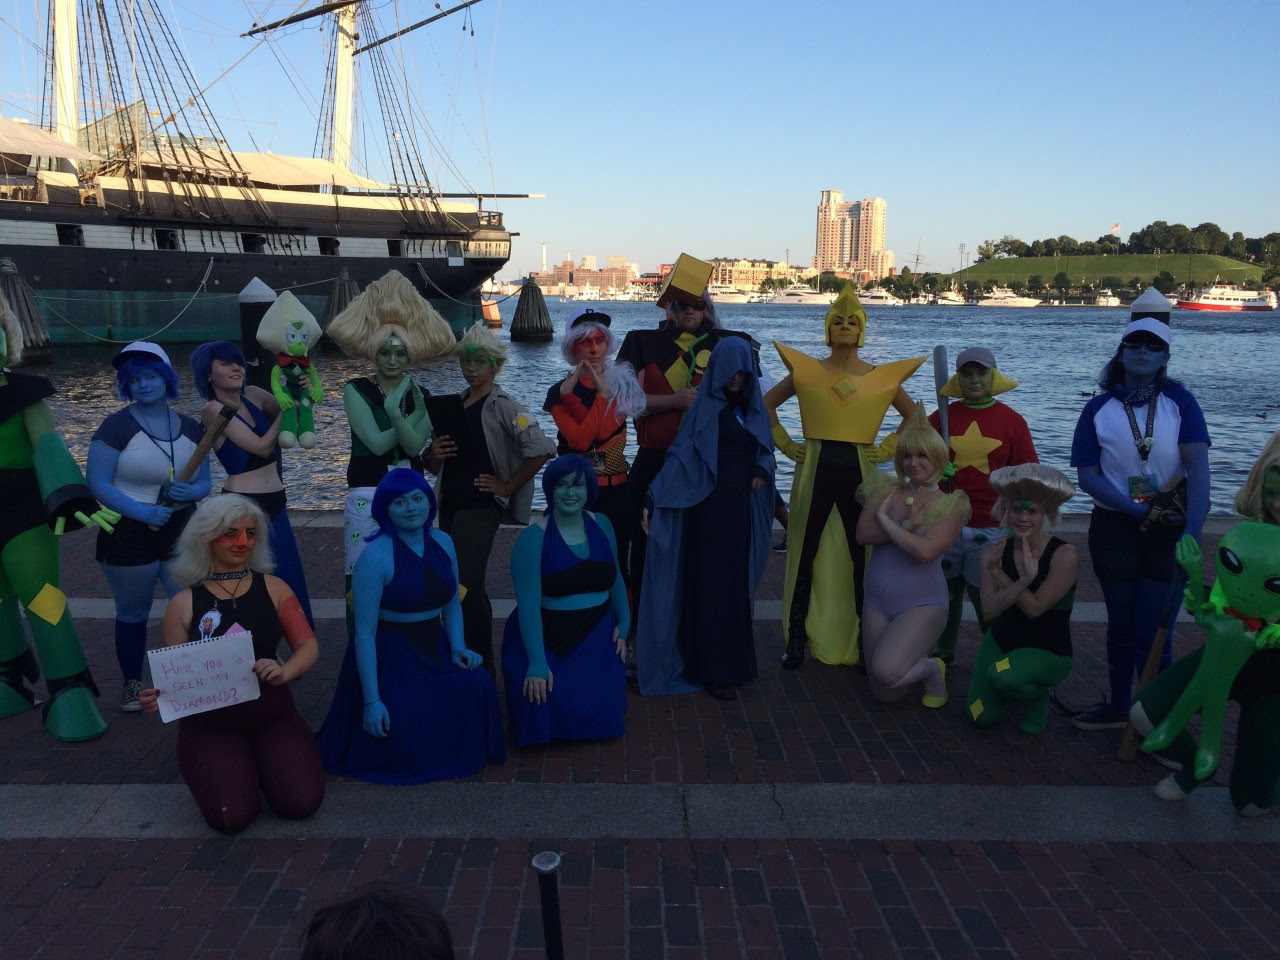 some photos from the steven universe photoshoot at otakon tag yourself if you're in here!